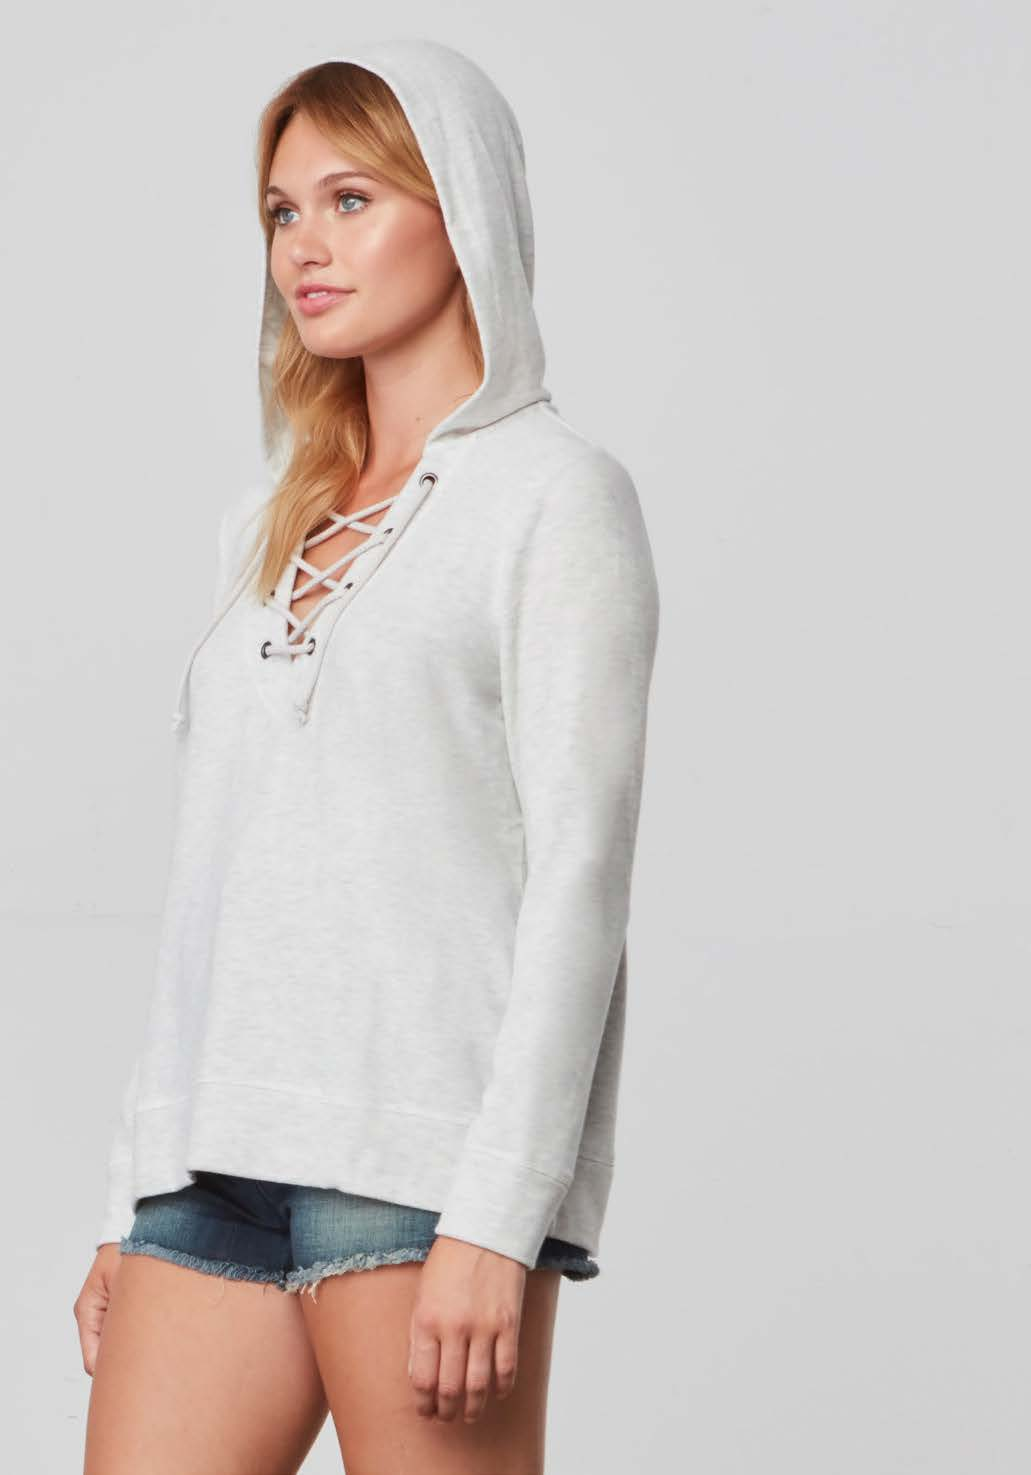 Asbretta Heather Ash Laceup Pullover Hoodie